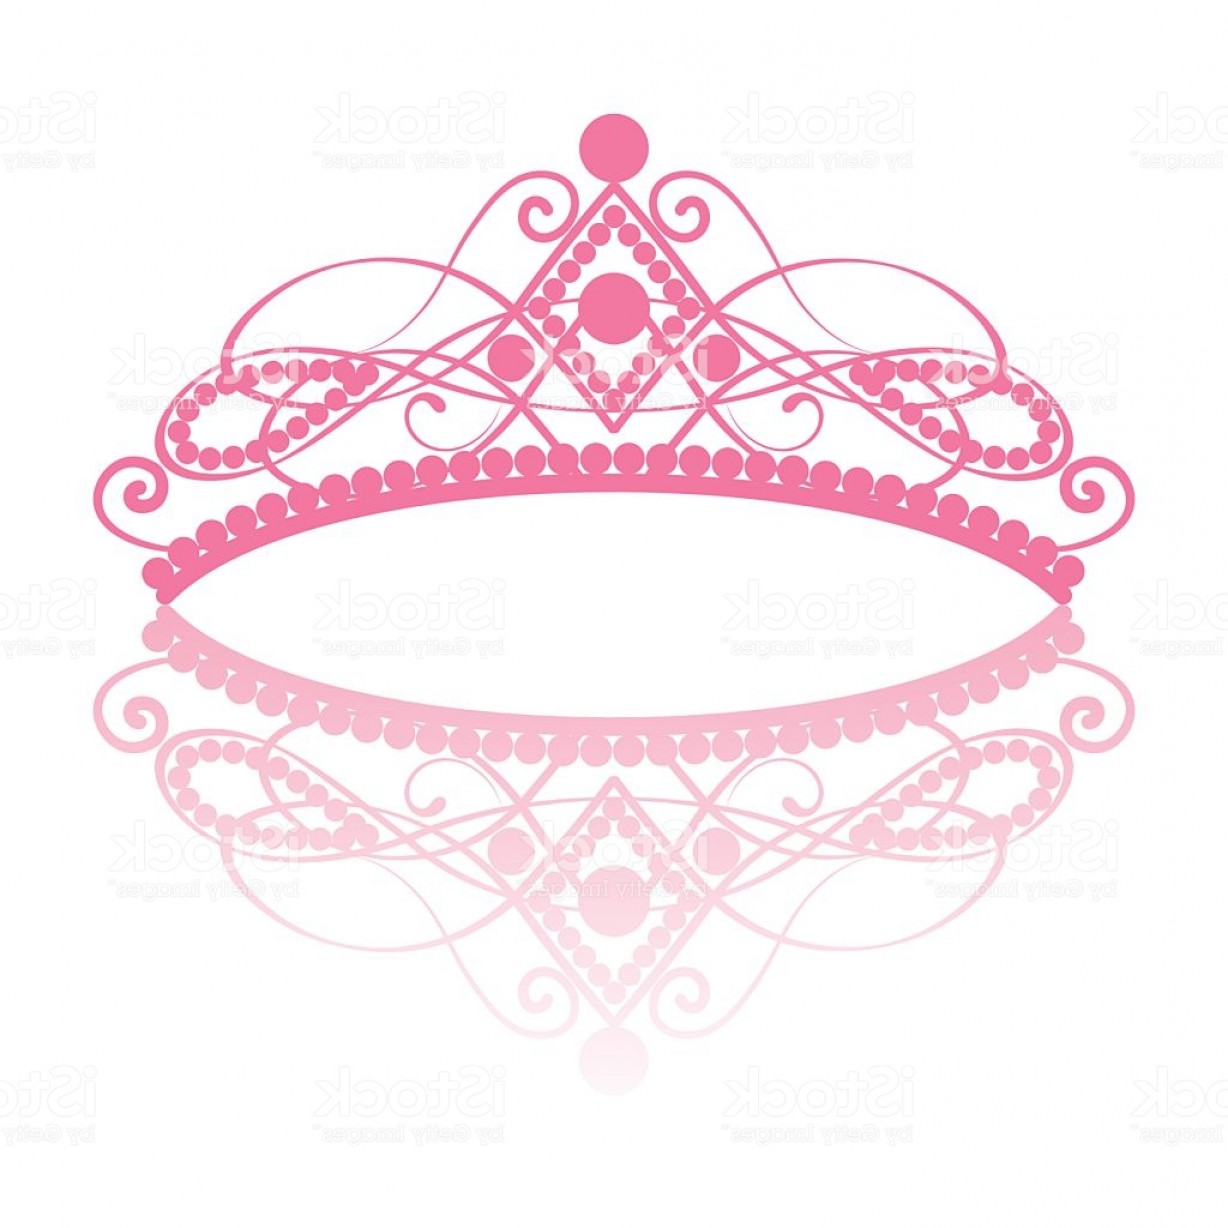 Pageant Tiaras Vector: Diadem Elegance Feminine Tiara With Reflection Gm